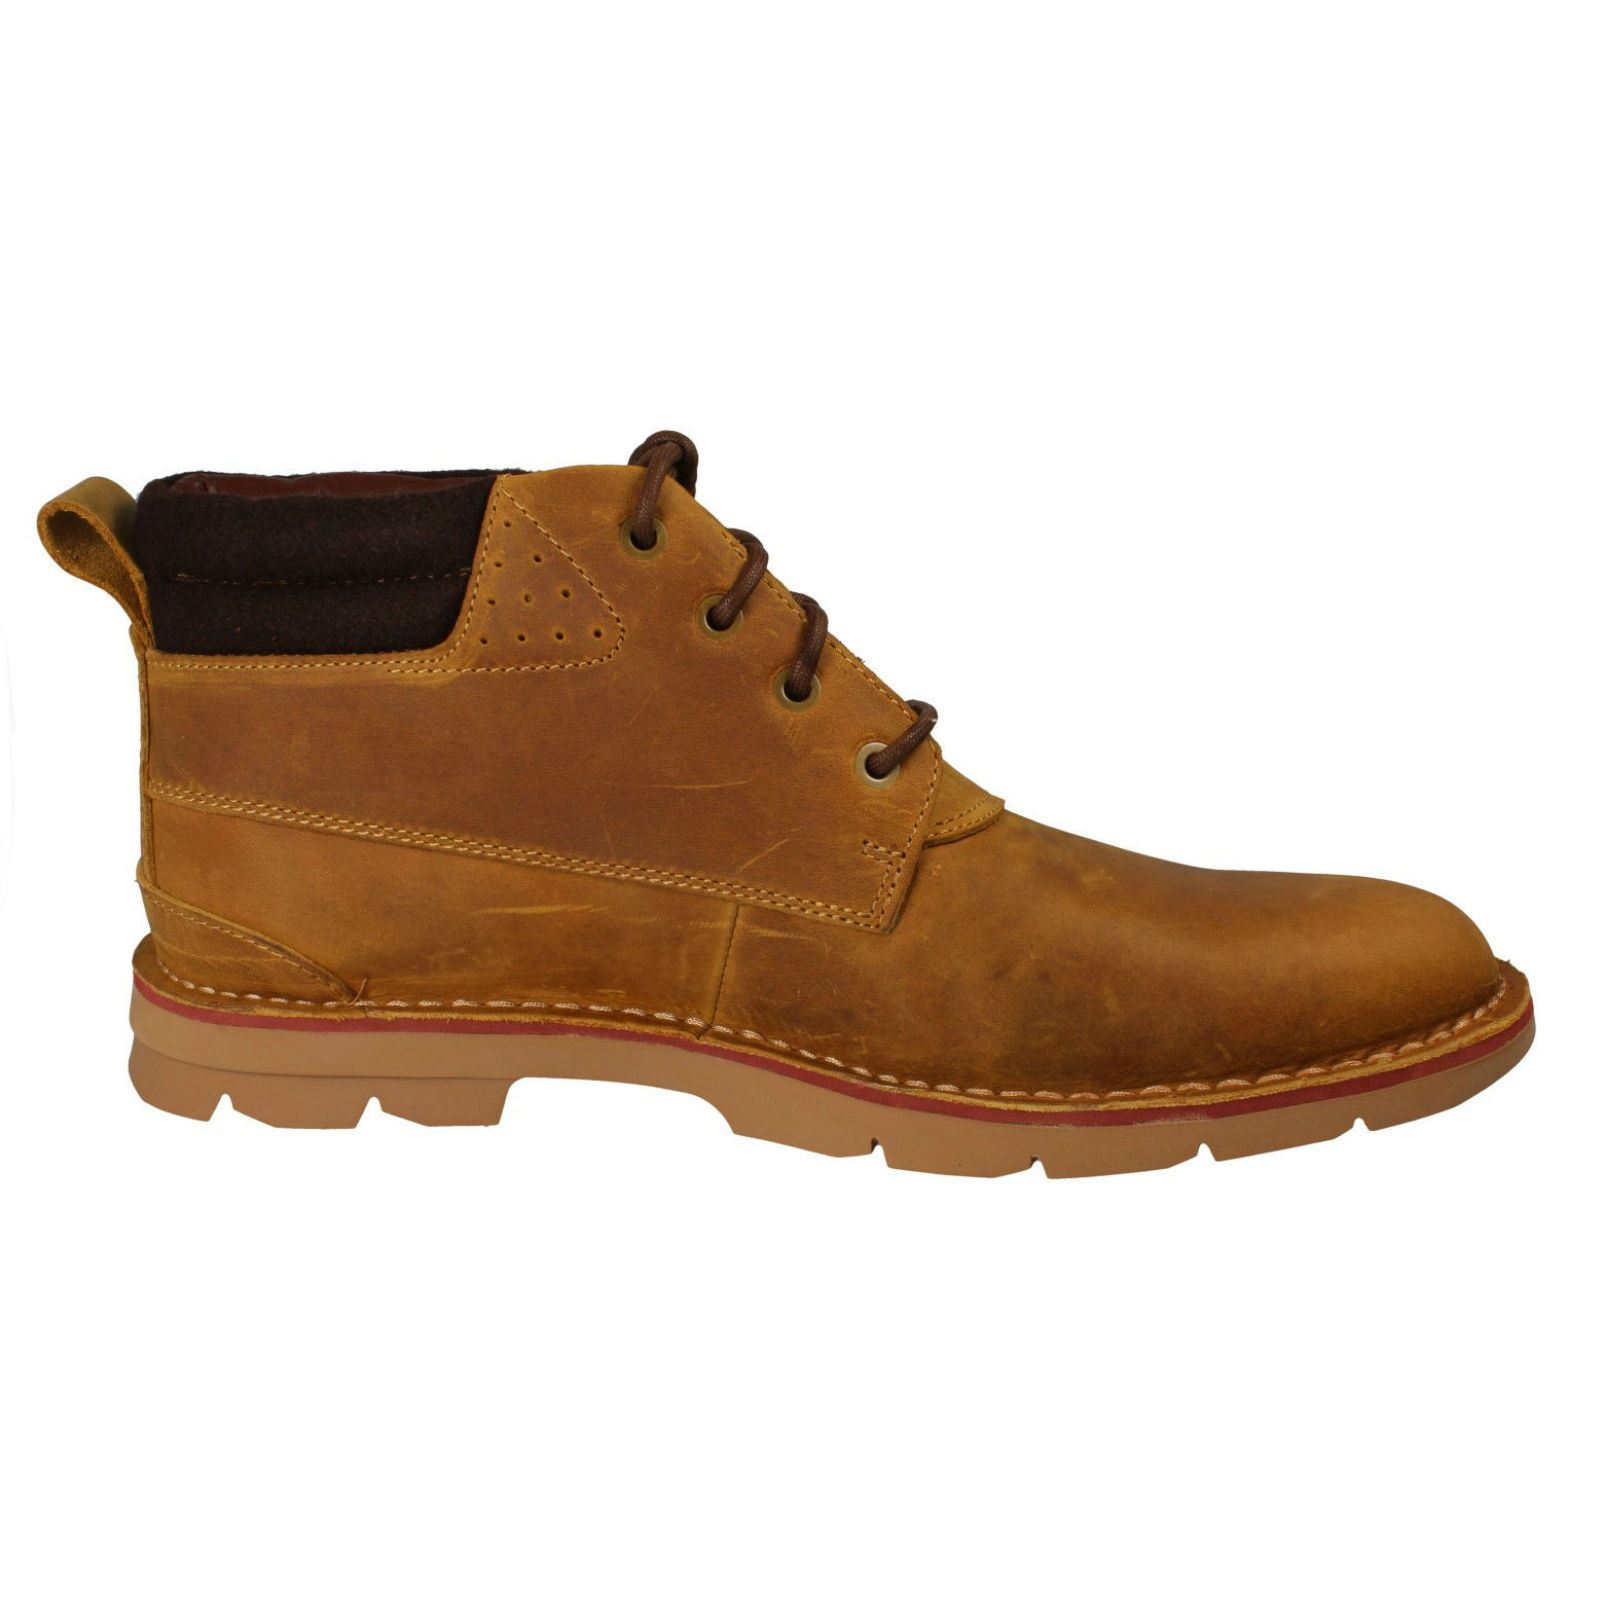 Mens-Clarks-Warm-Lined-Casual-Boots-039-Varick-Heal-039 thumbnail 14